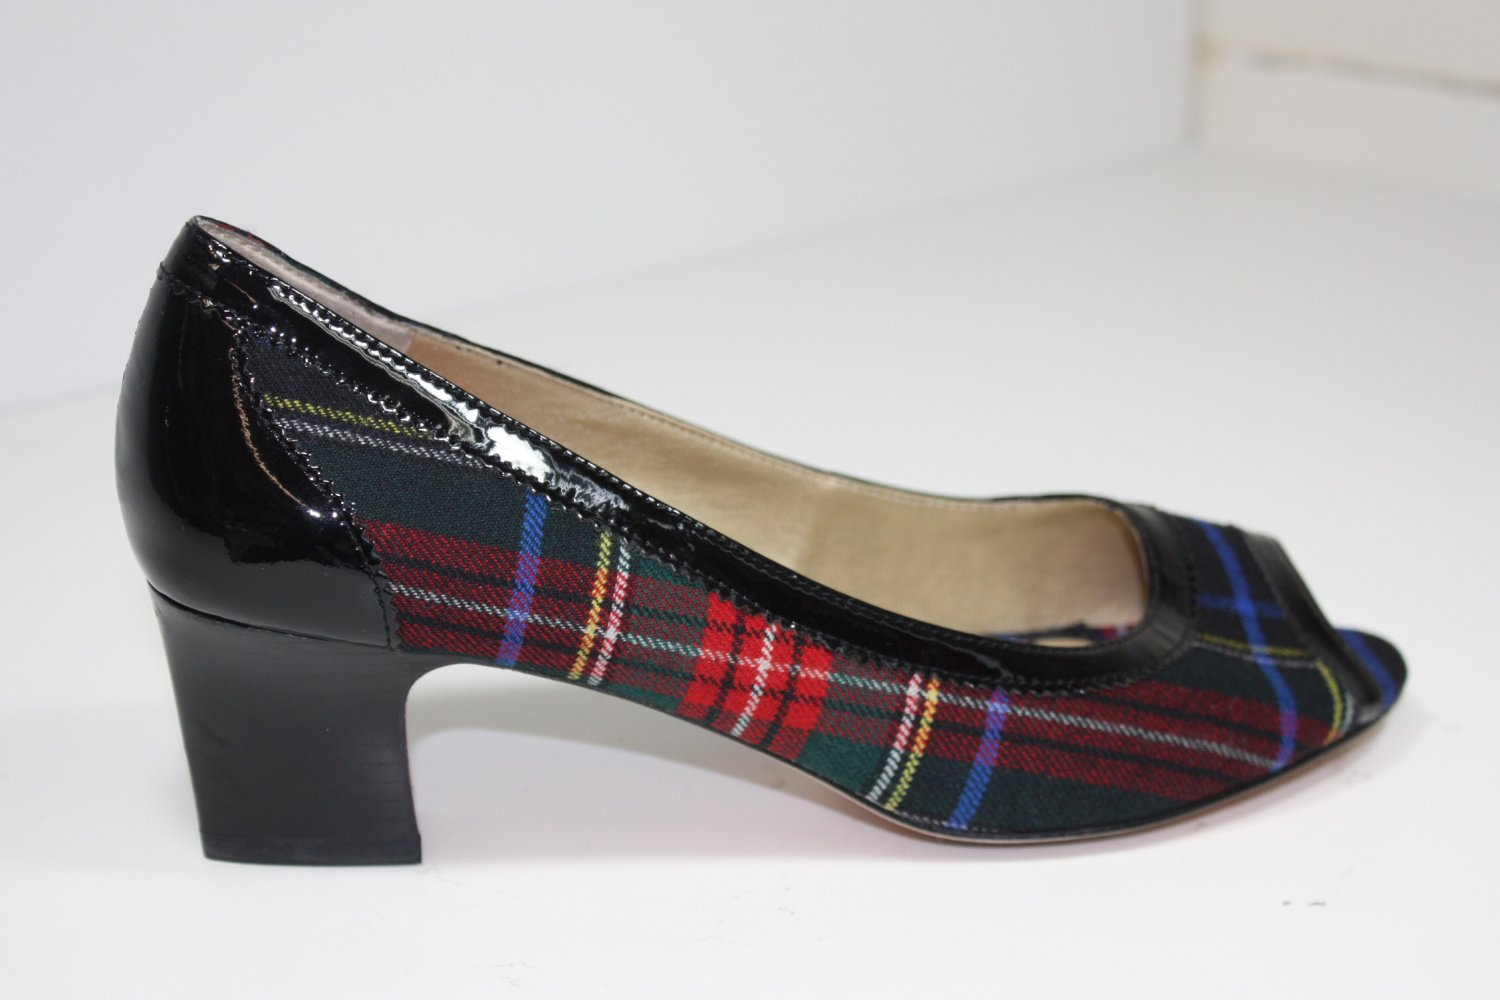 Franco Sarto Notion Heels Multi Color Shoes US 8 $89